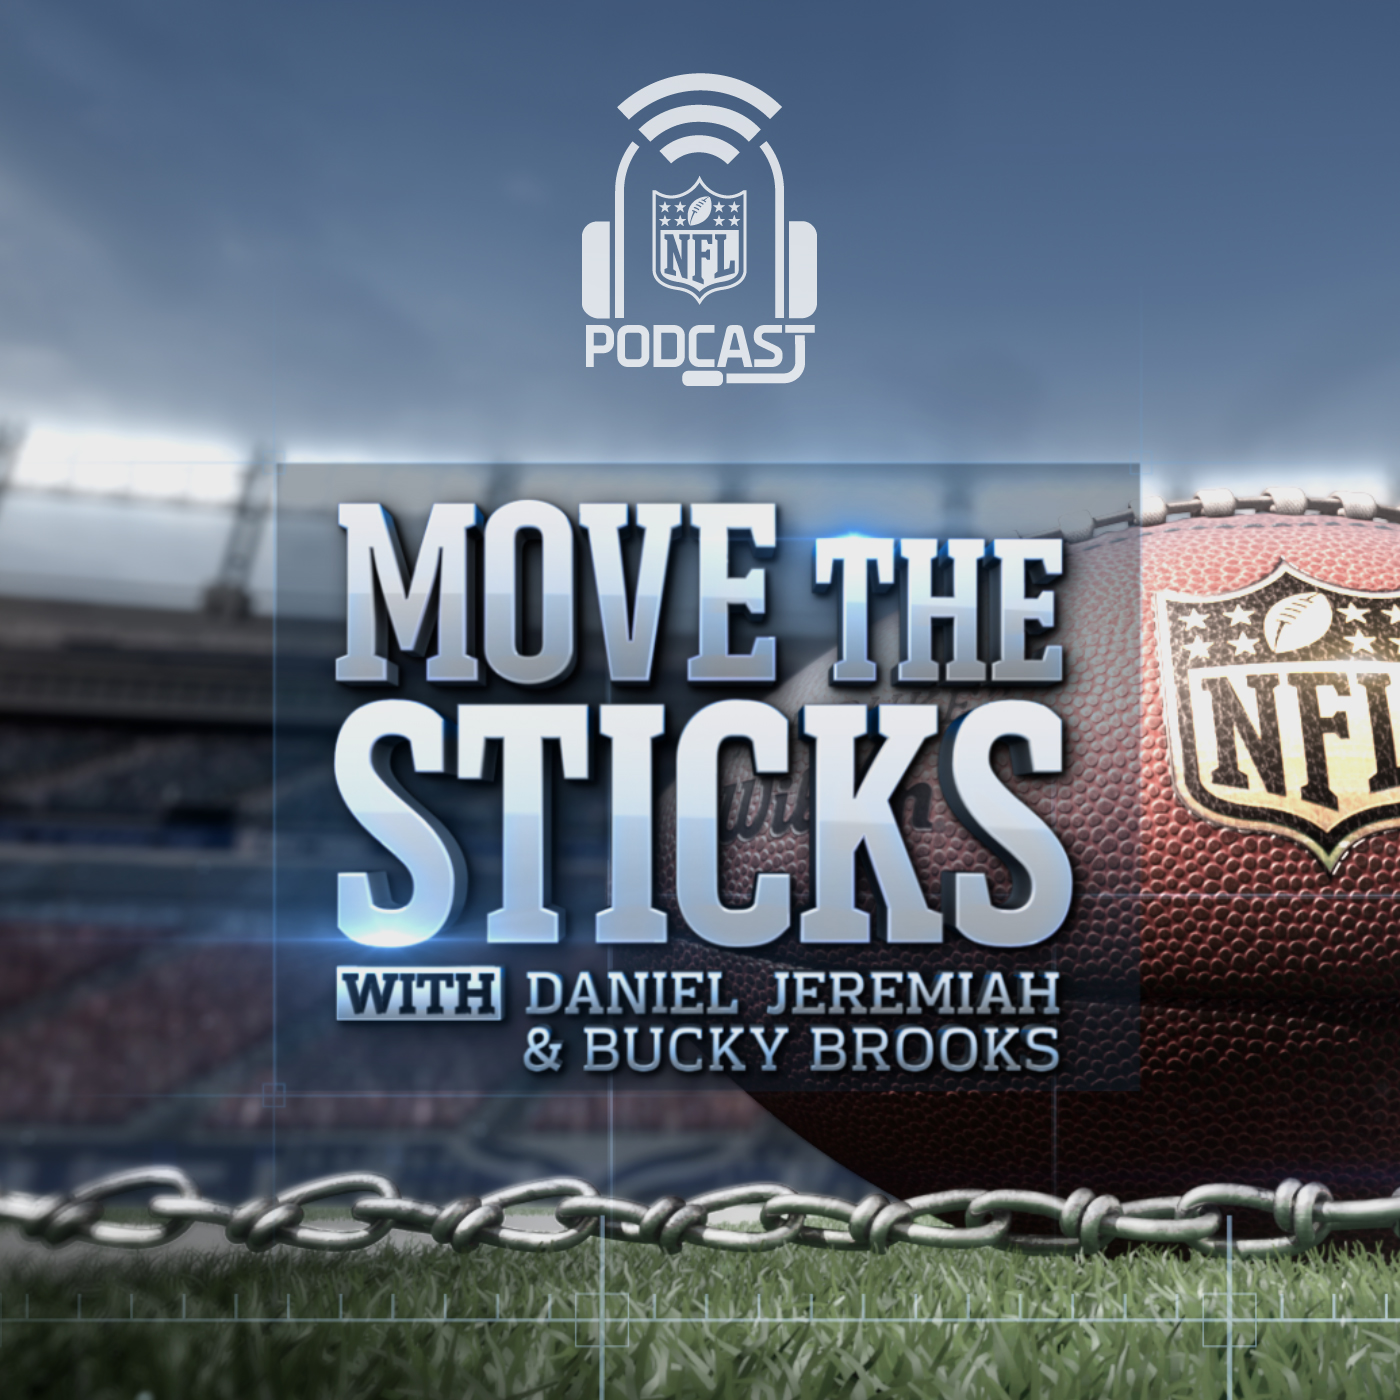 Move the Sticks with Daniel Jeremiah & Bucky Brooks